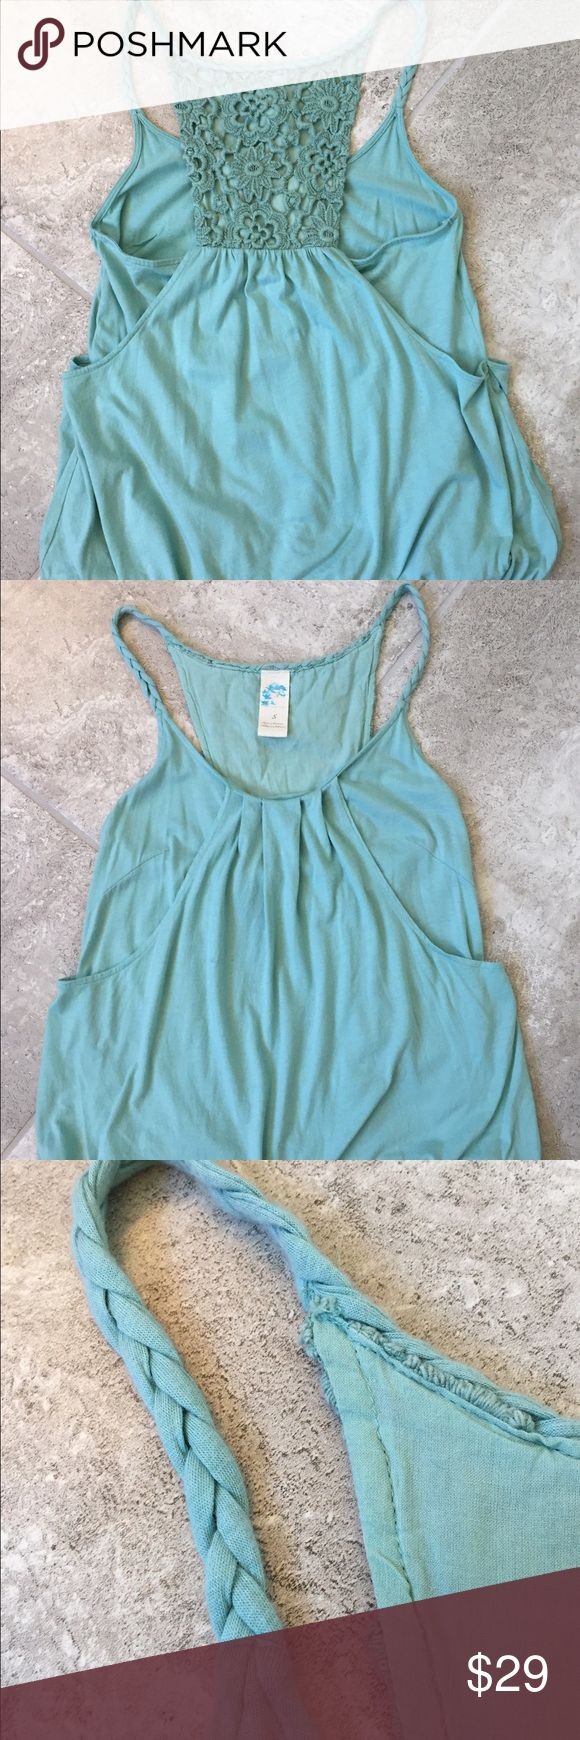 Anthropologie Crochet Back tank, SZ S! For sale is a gorgeous tank from Anthropologie! It's a beautiful sea green color and has braided straps, a chrochet back and a blouson waist. Perfect for spring and summer!! In great shape, only worn once! Anthropologie Tops